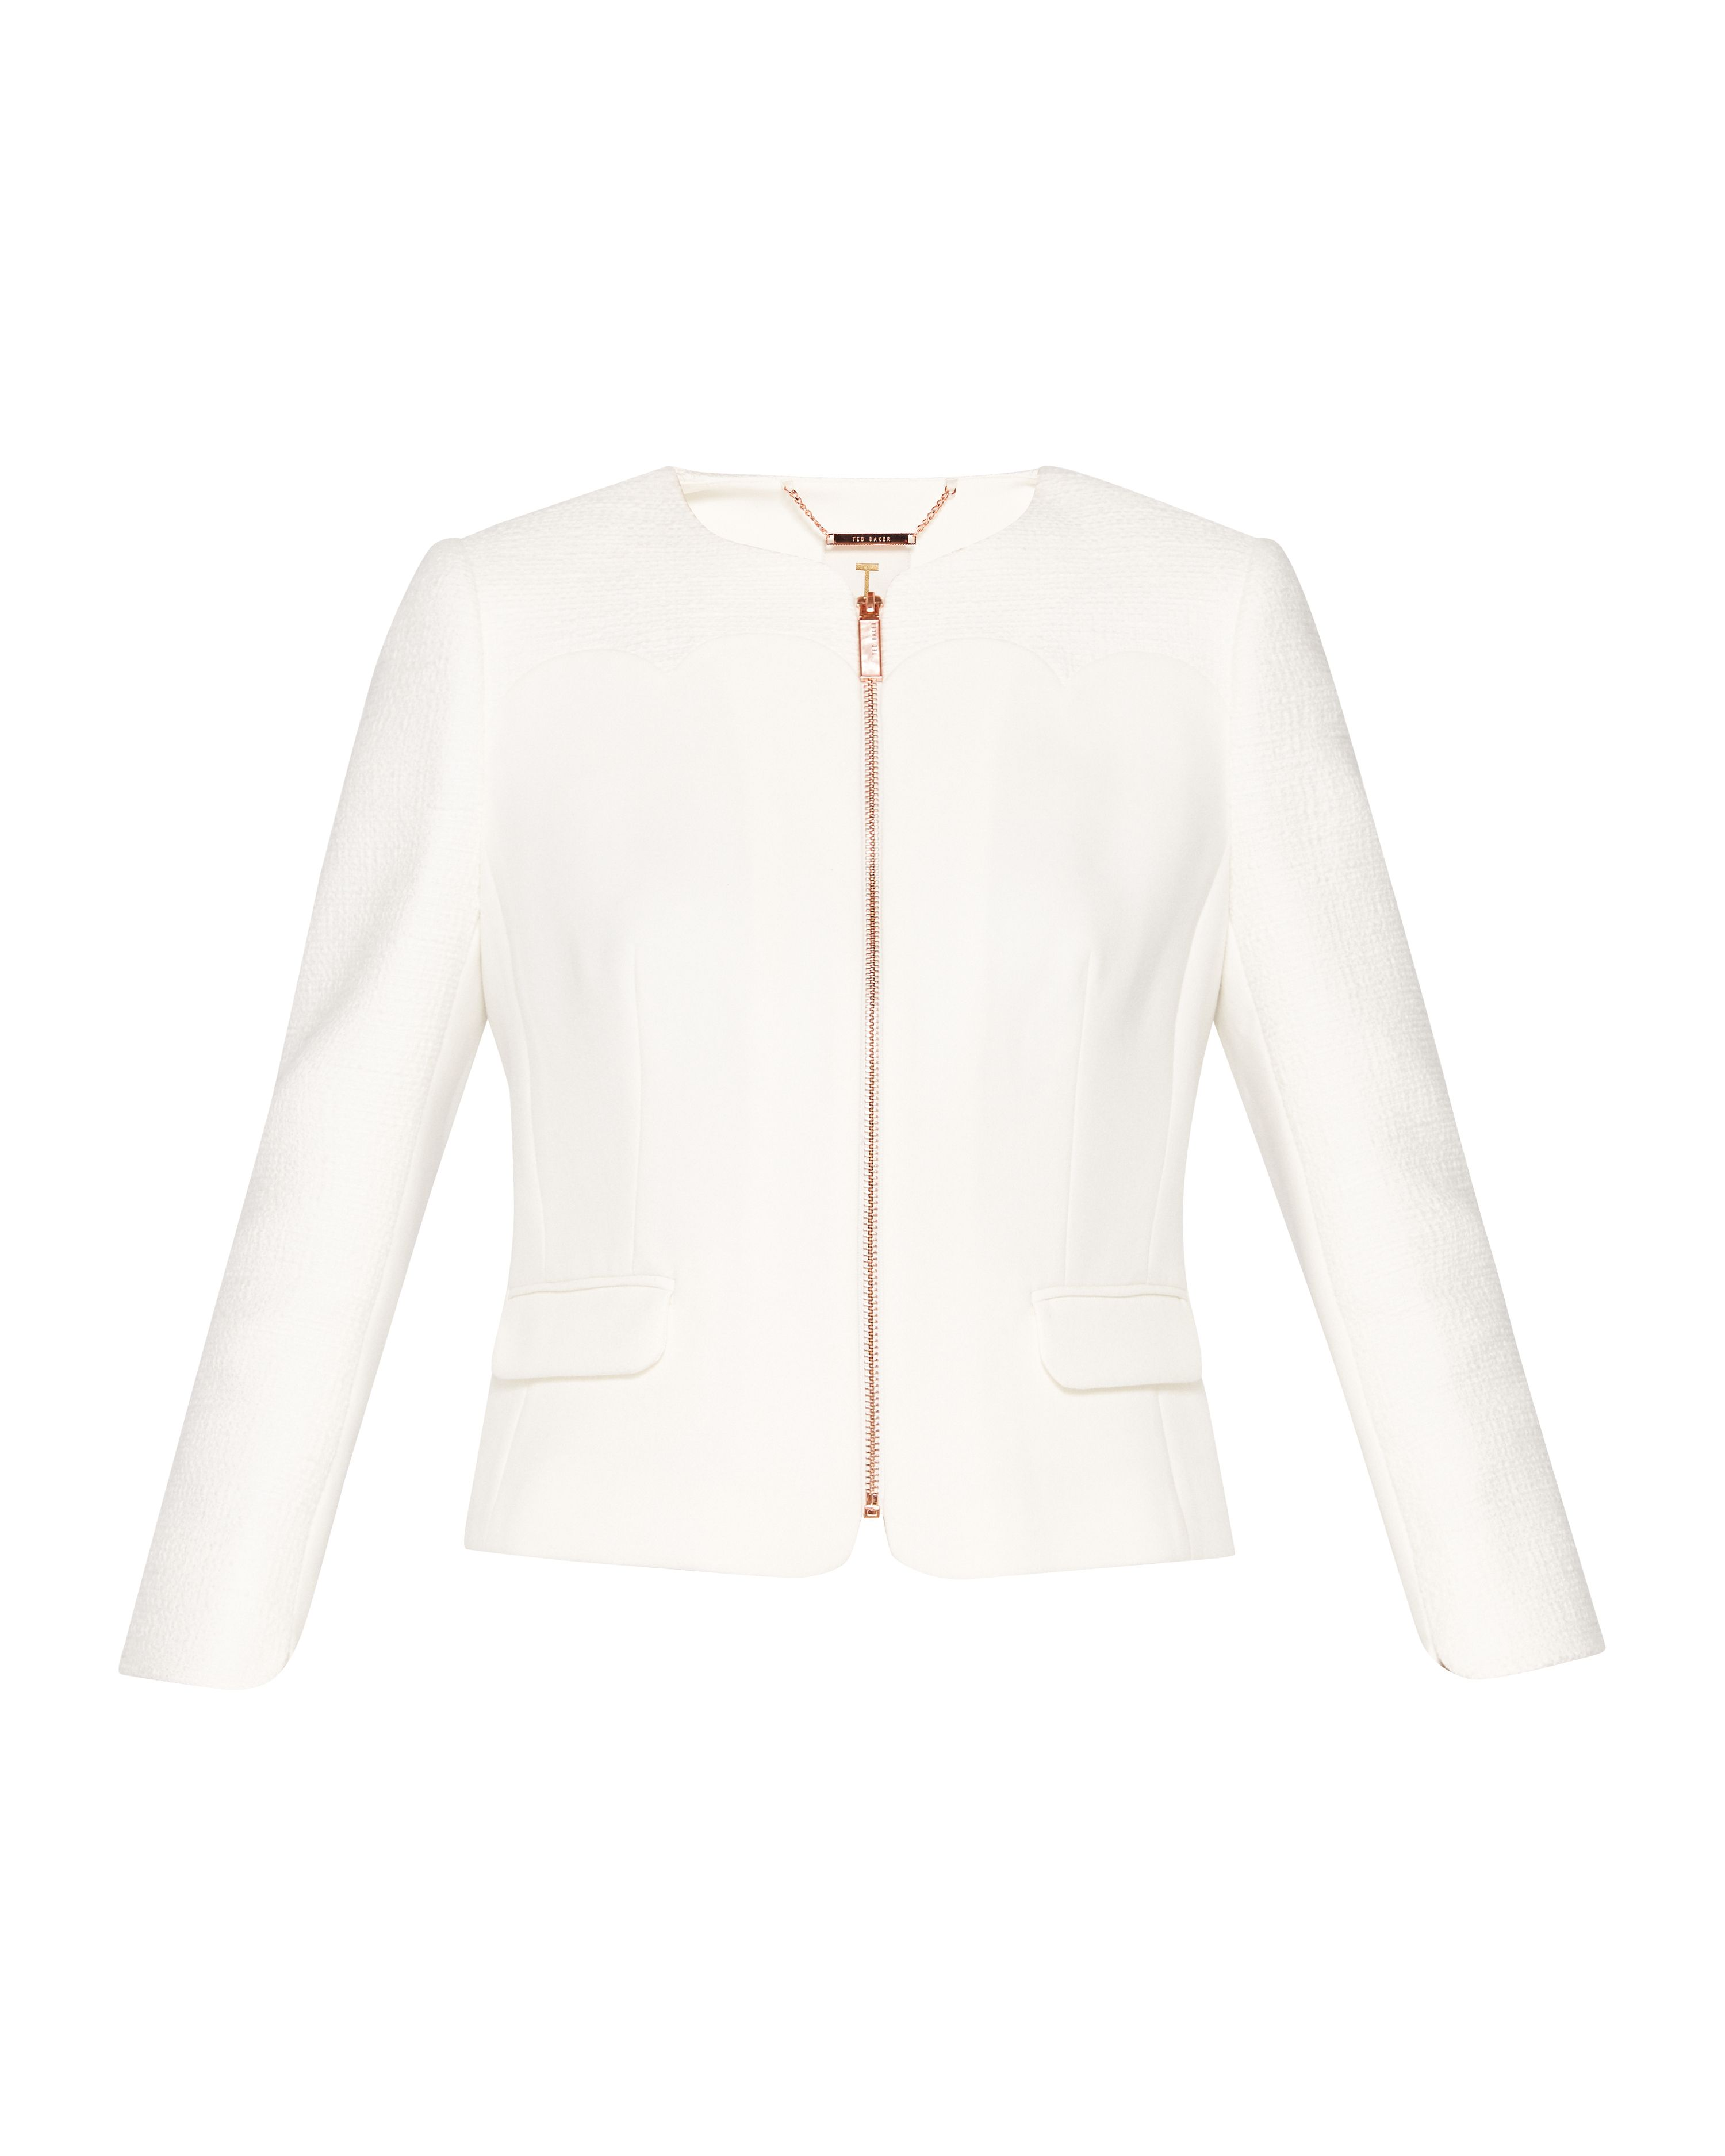 Ted Baker Ila Scallop Detail Zip Up Jacket, White